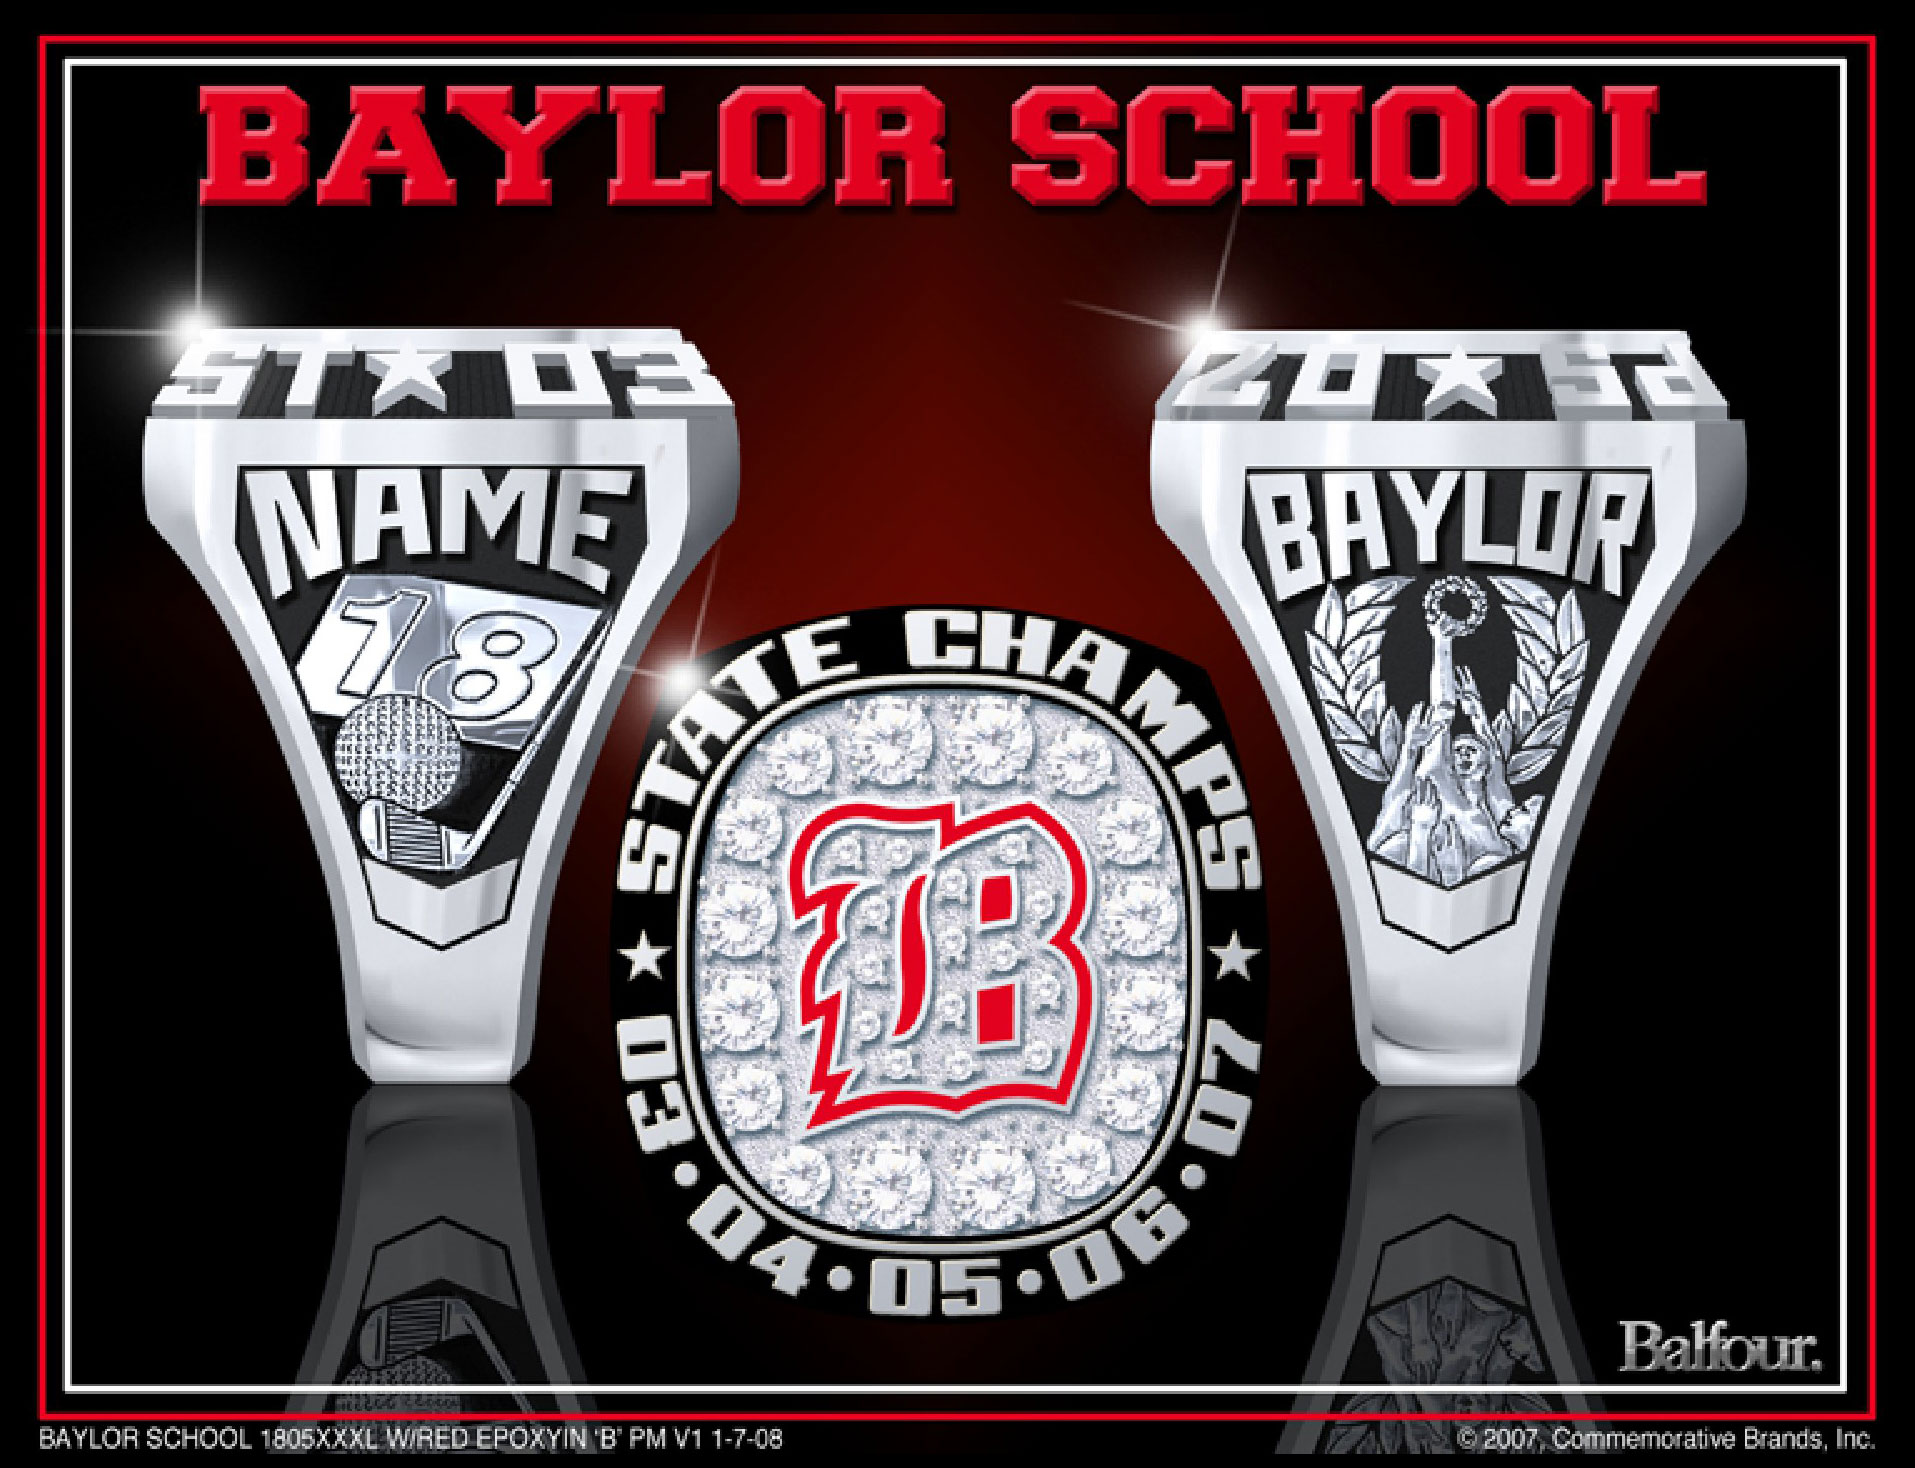 Golf Baylor high school championship rings